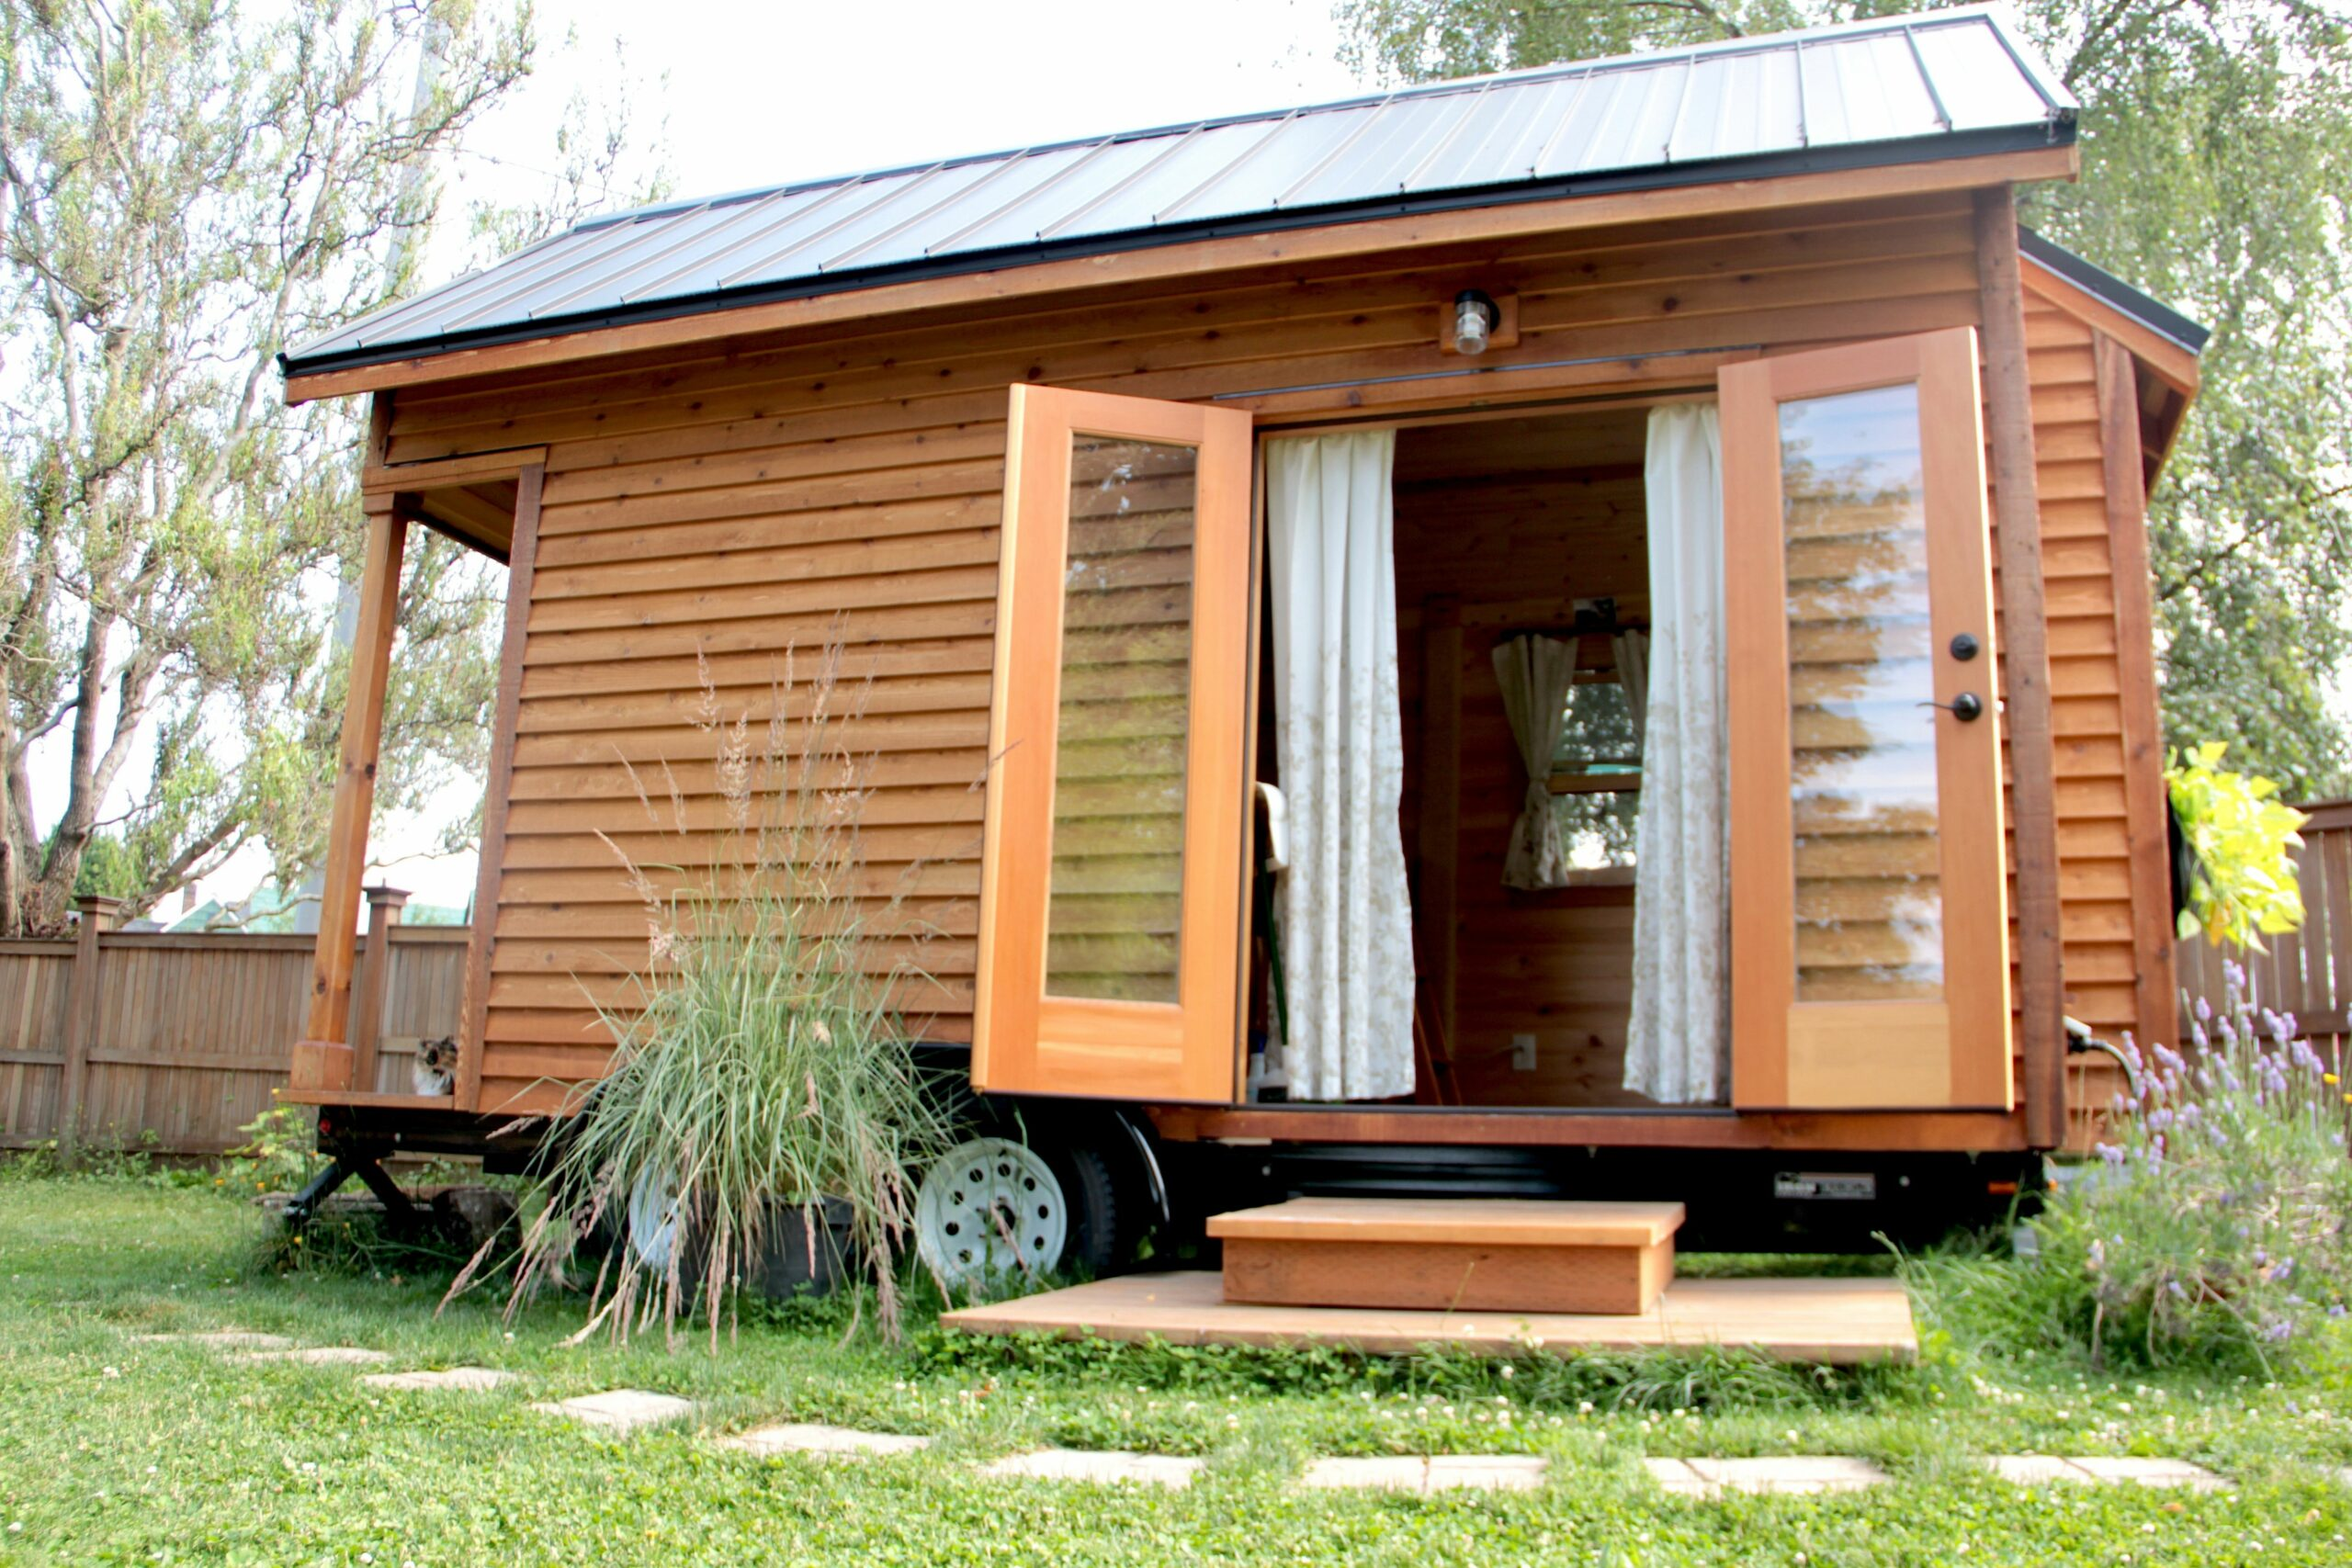 Interest in tiny houses is growing, so who wants them and why?